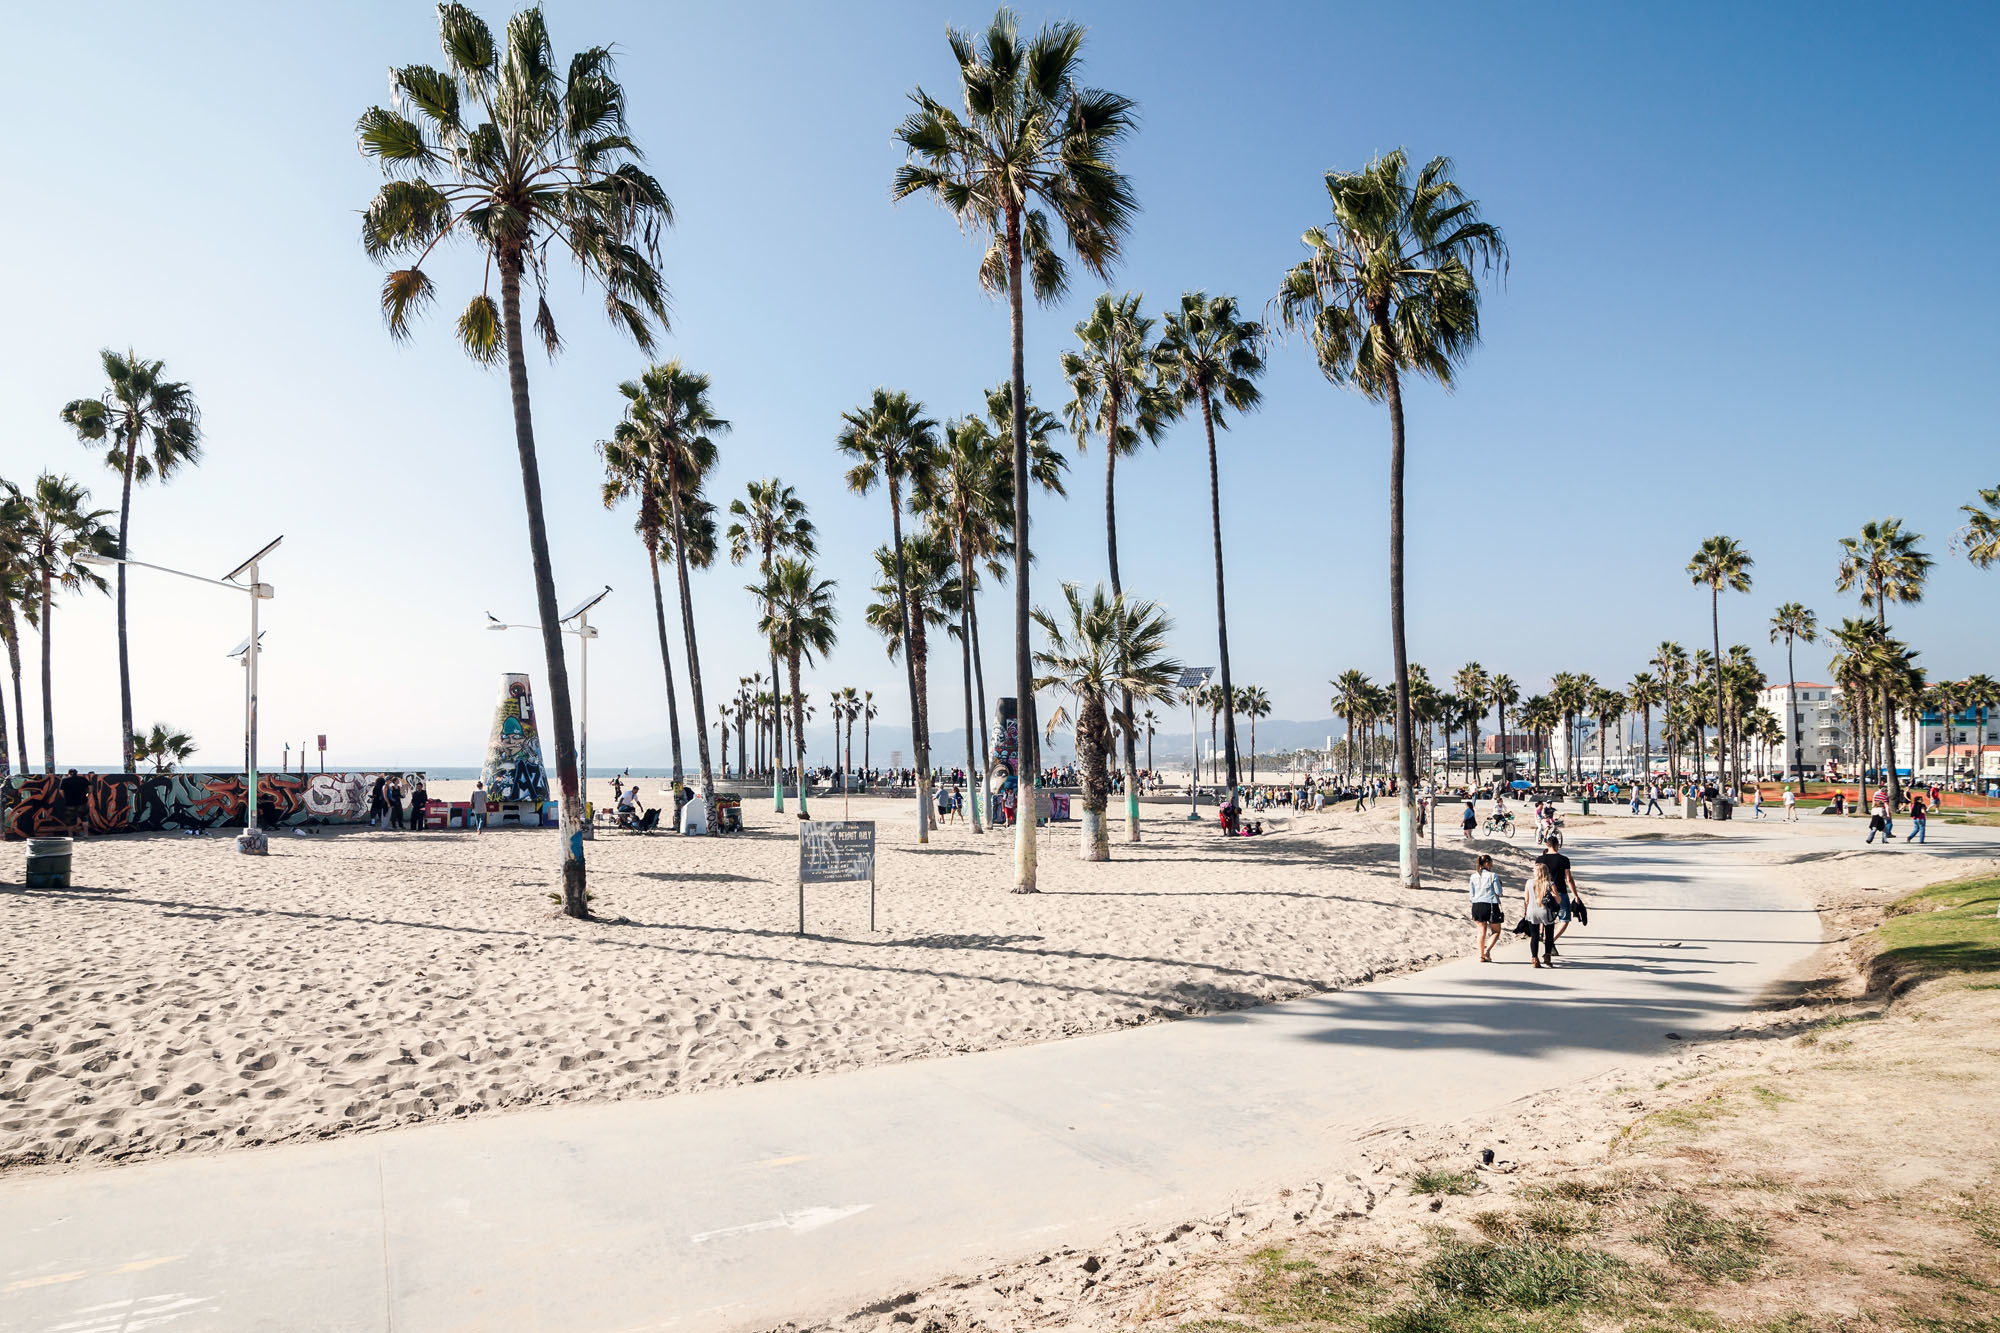 Venice Beach California Wallpaper 67 images 2000x1333